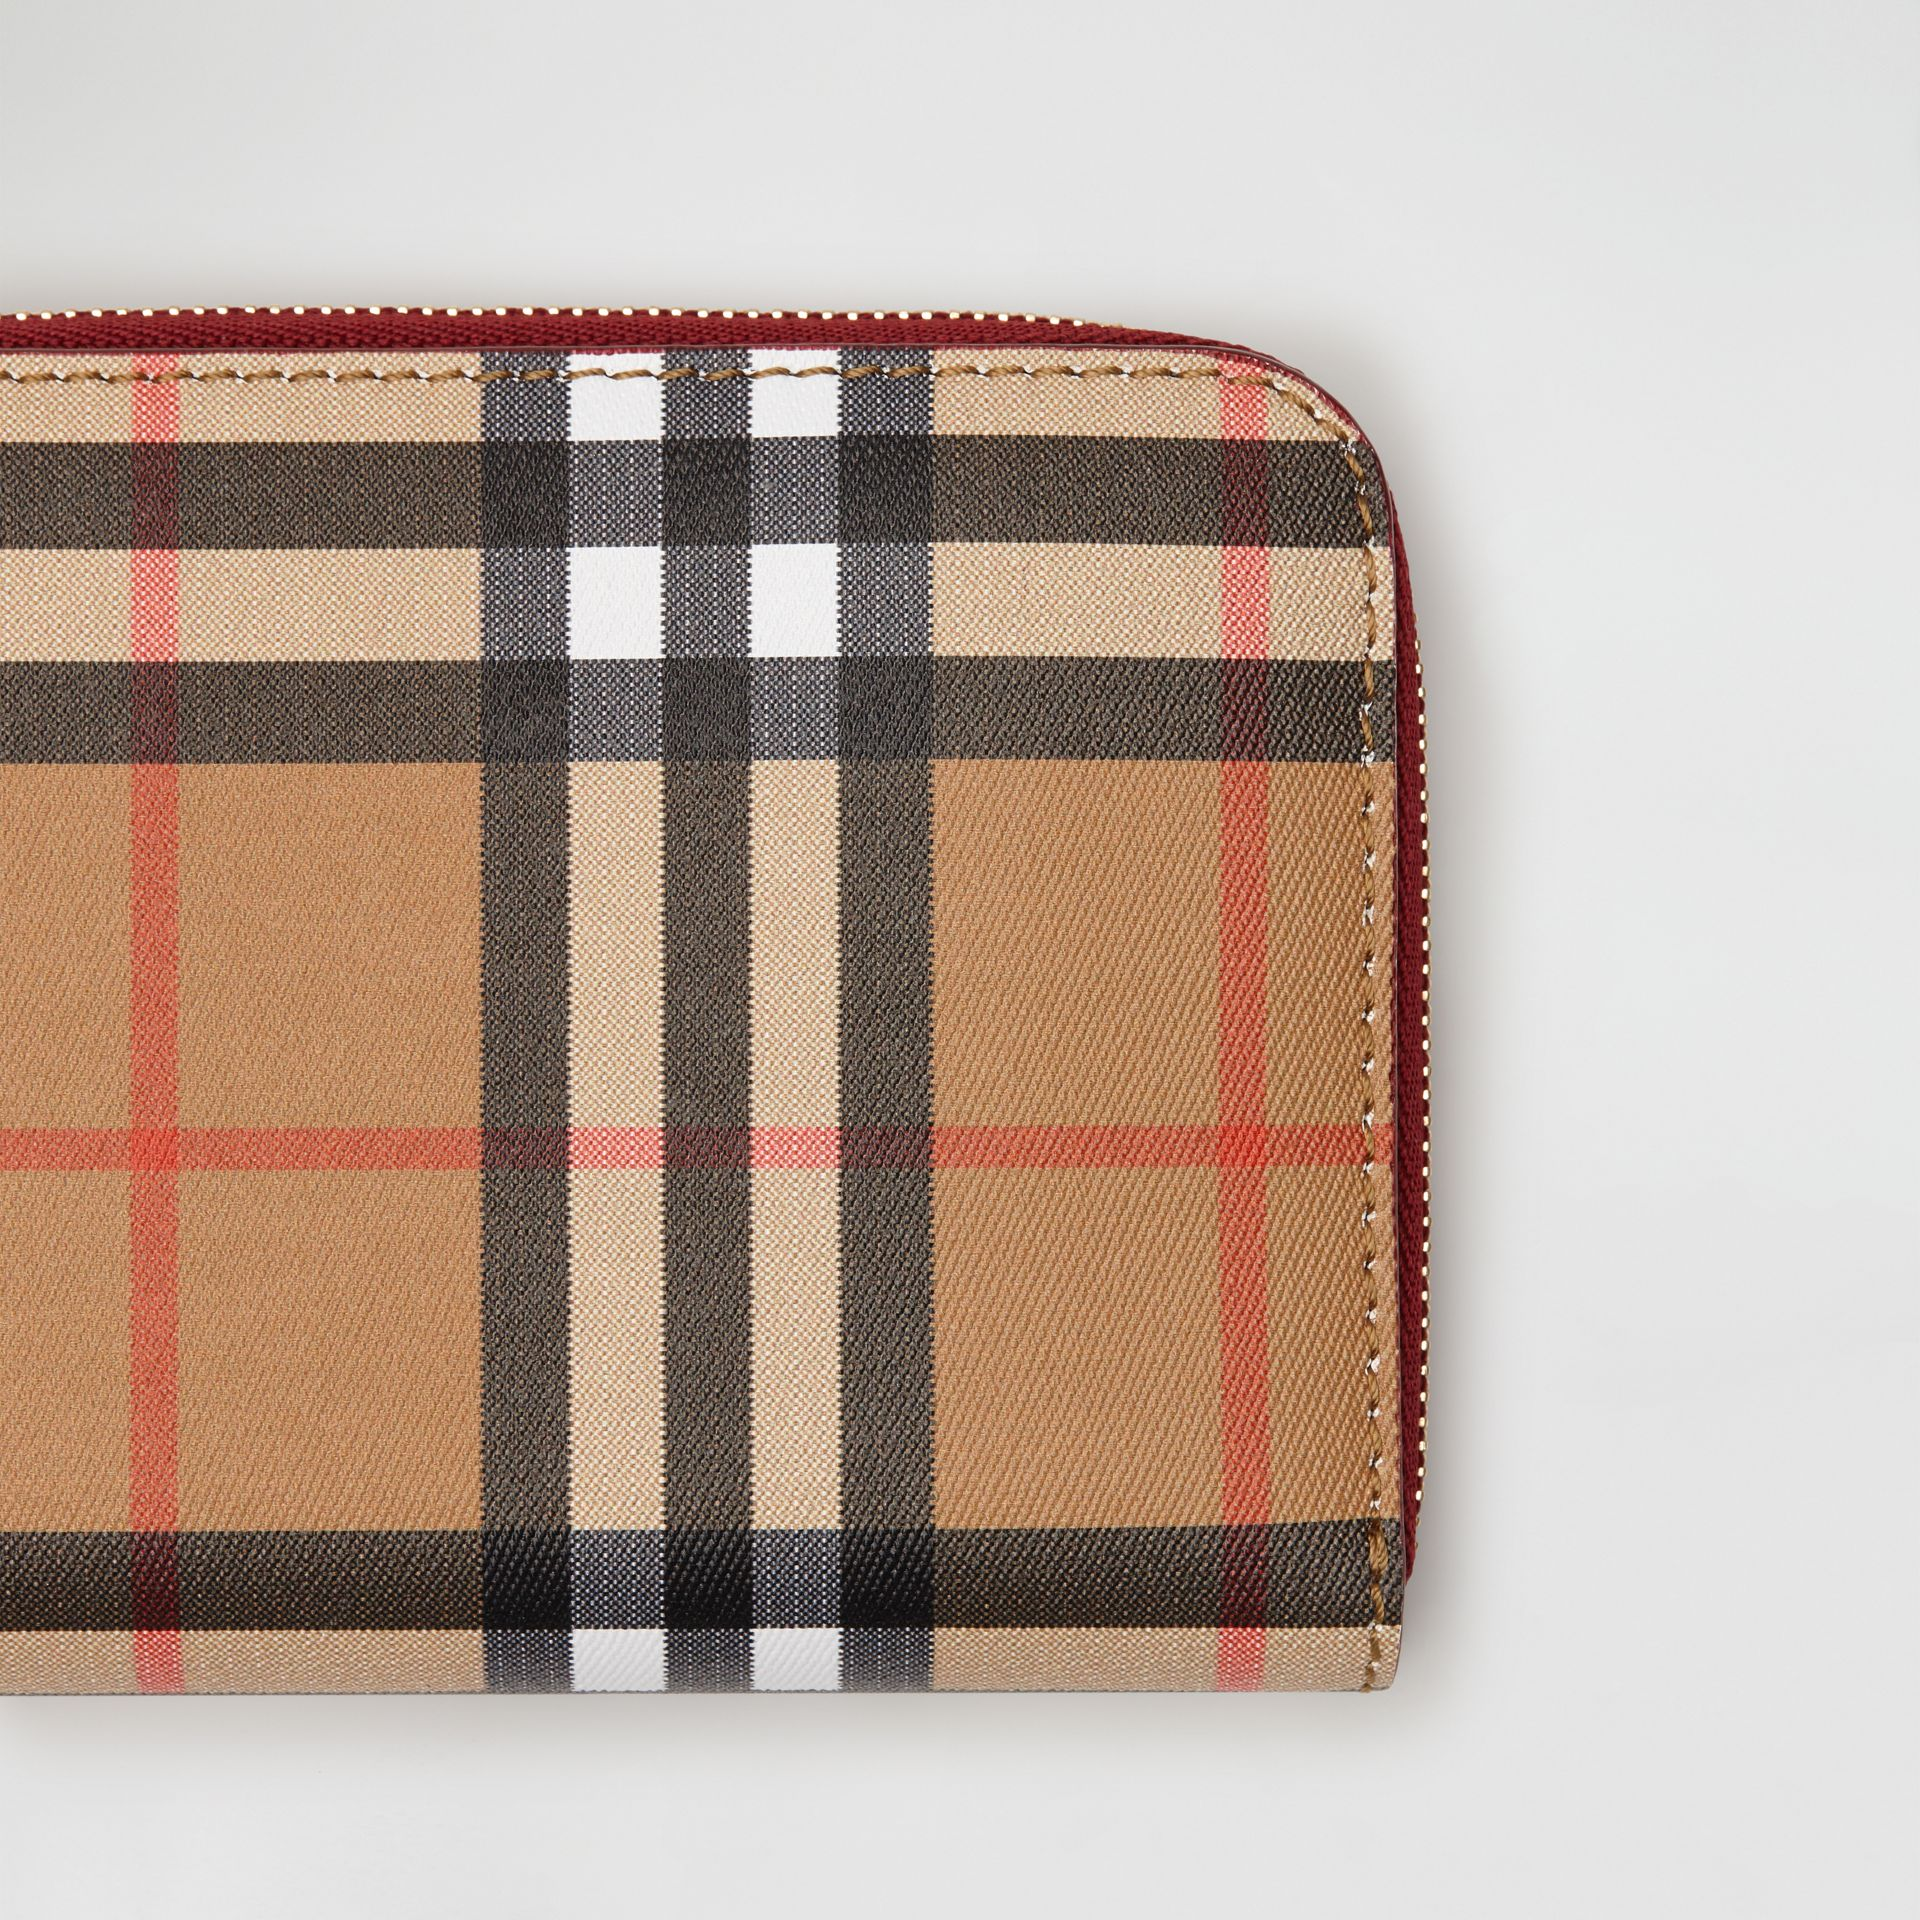 Vintage Check and Leather Ziparound Wallet in Crimson - Women | Burberry United Kingdom - gallery image 1